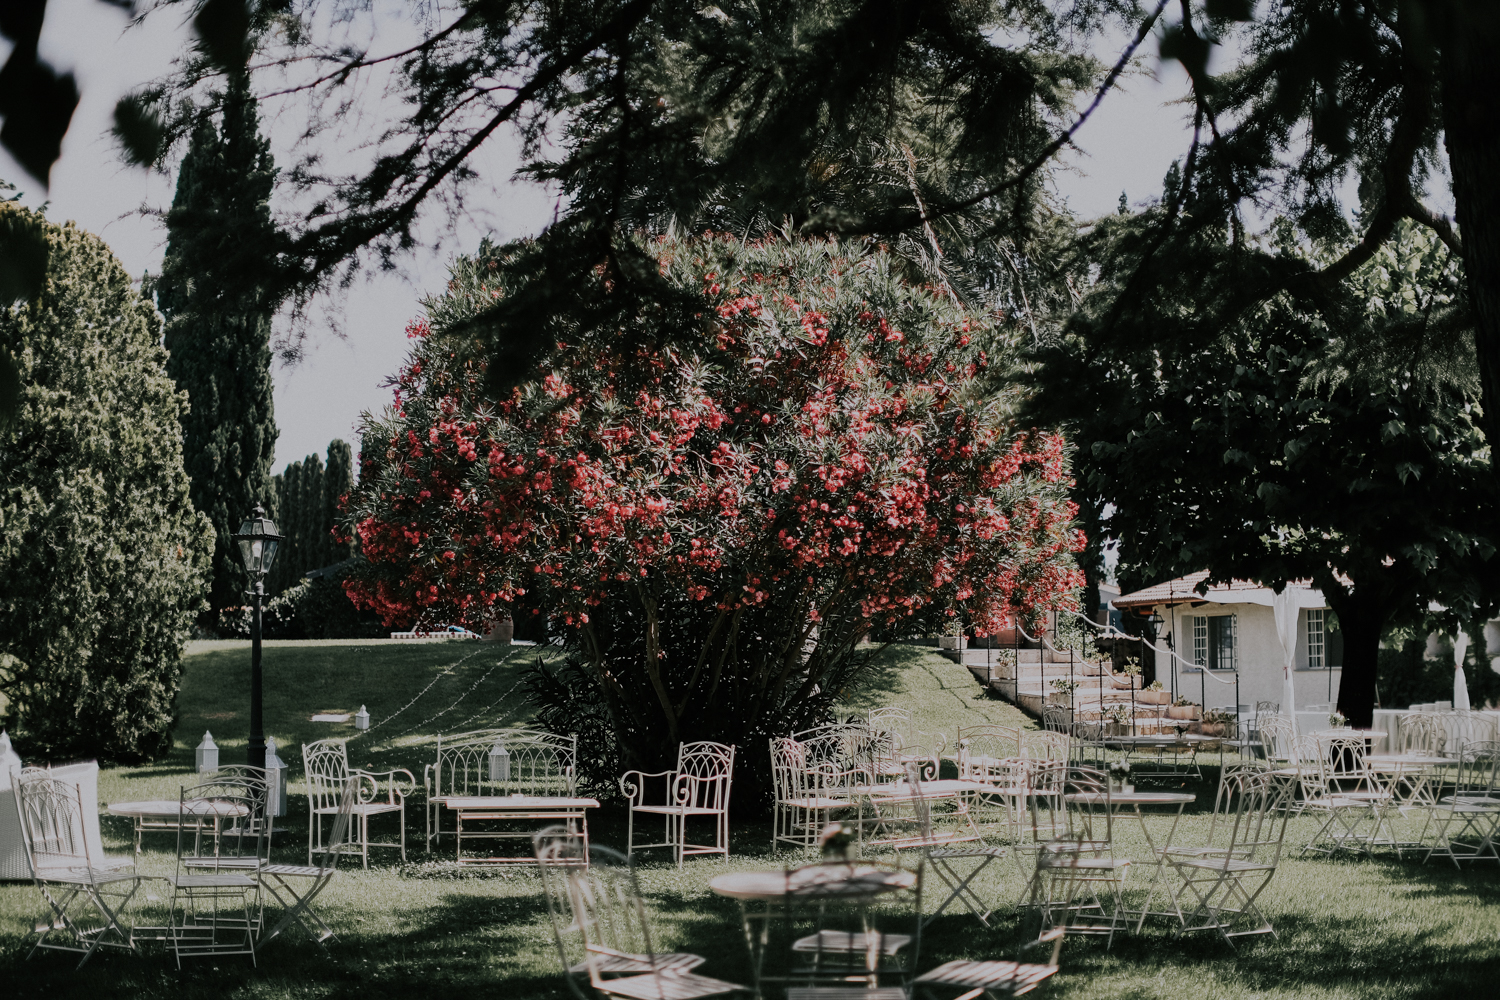 http://www.weddingamalfi.com/wp-content/uploads/Alessandro-and-Diego-white-chairs-for-guests-in-the-garden.jpg